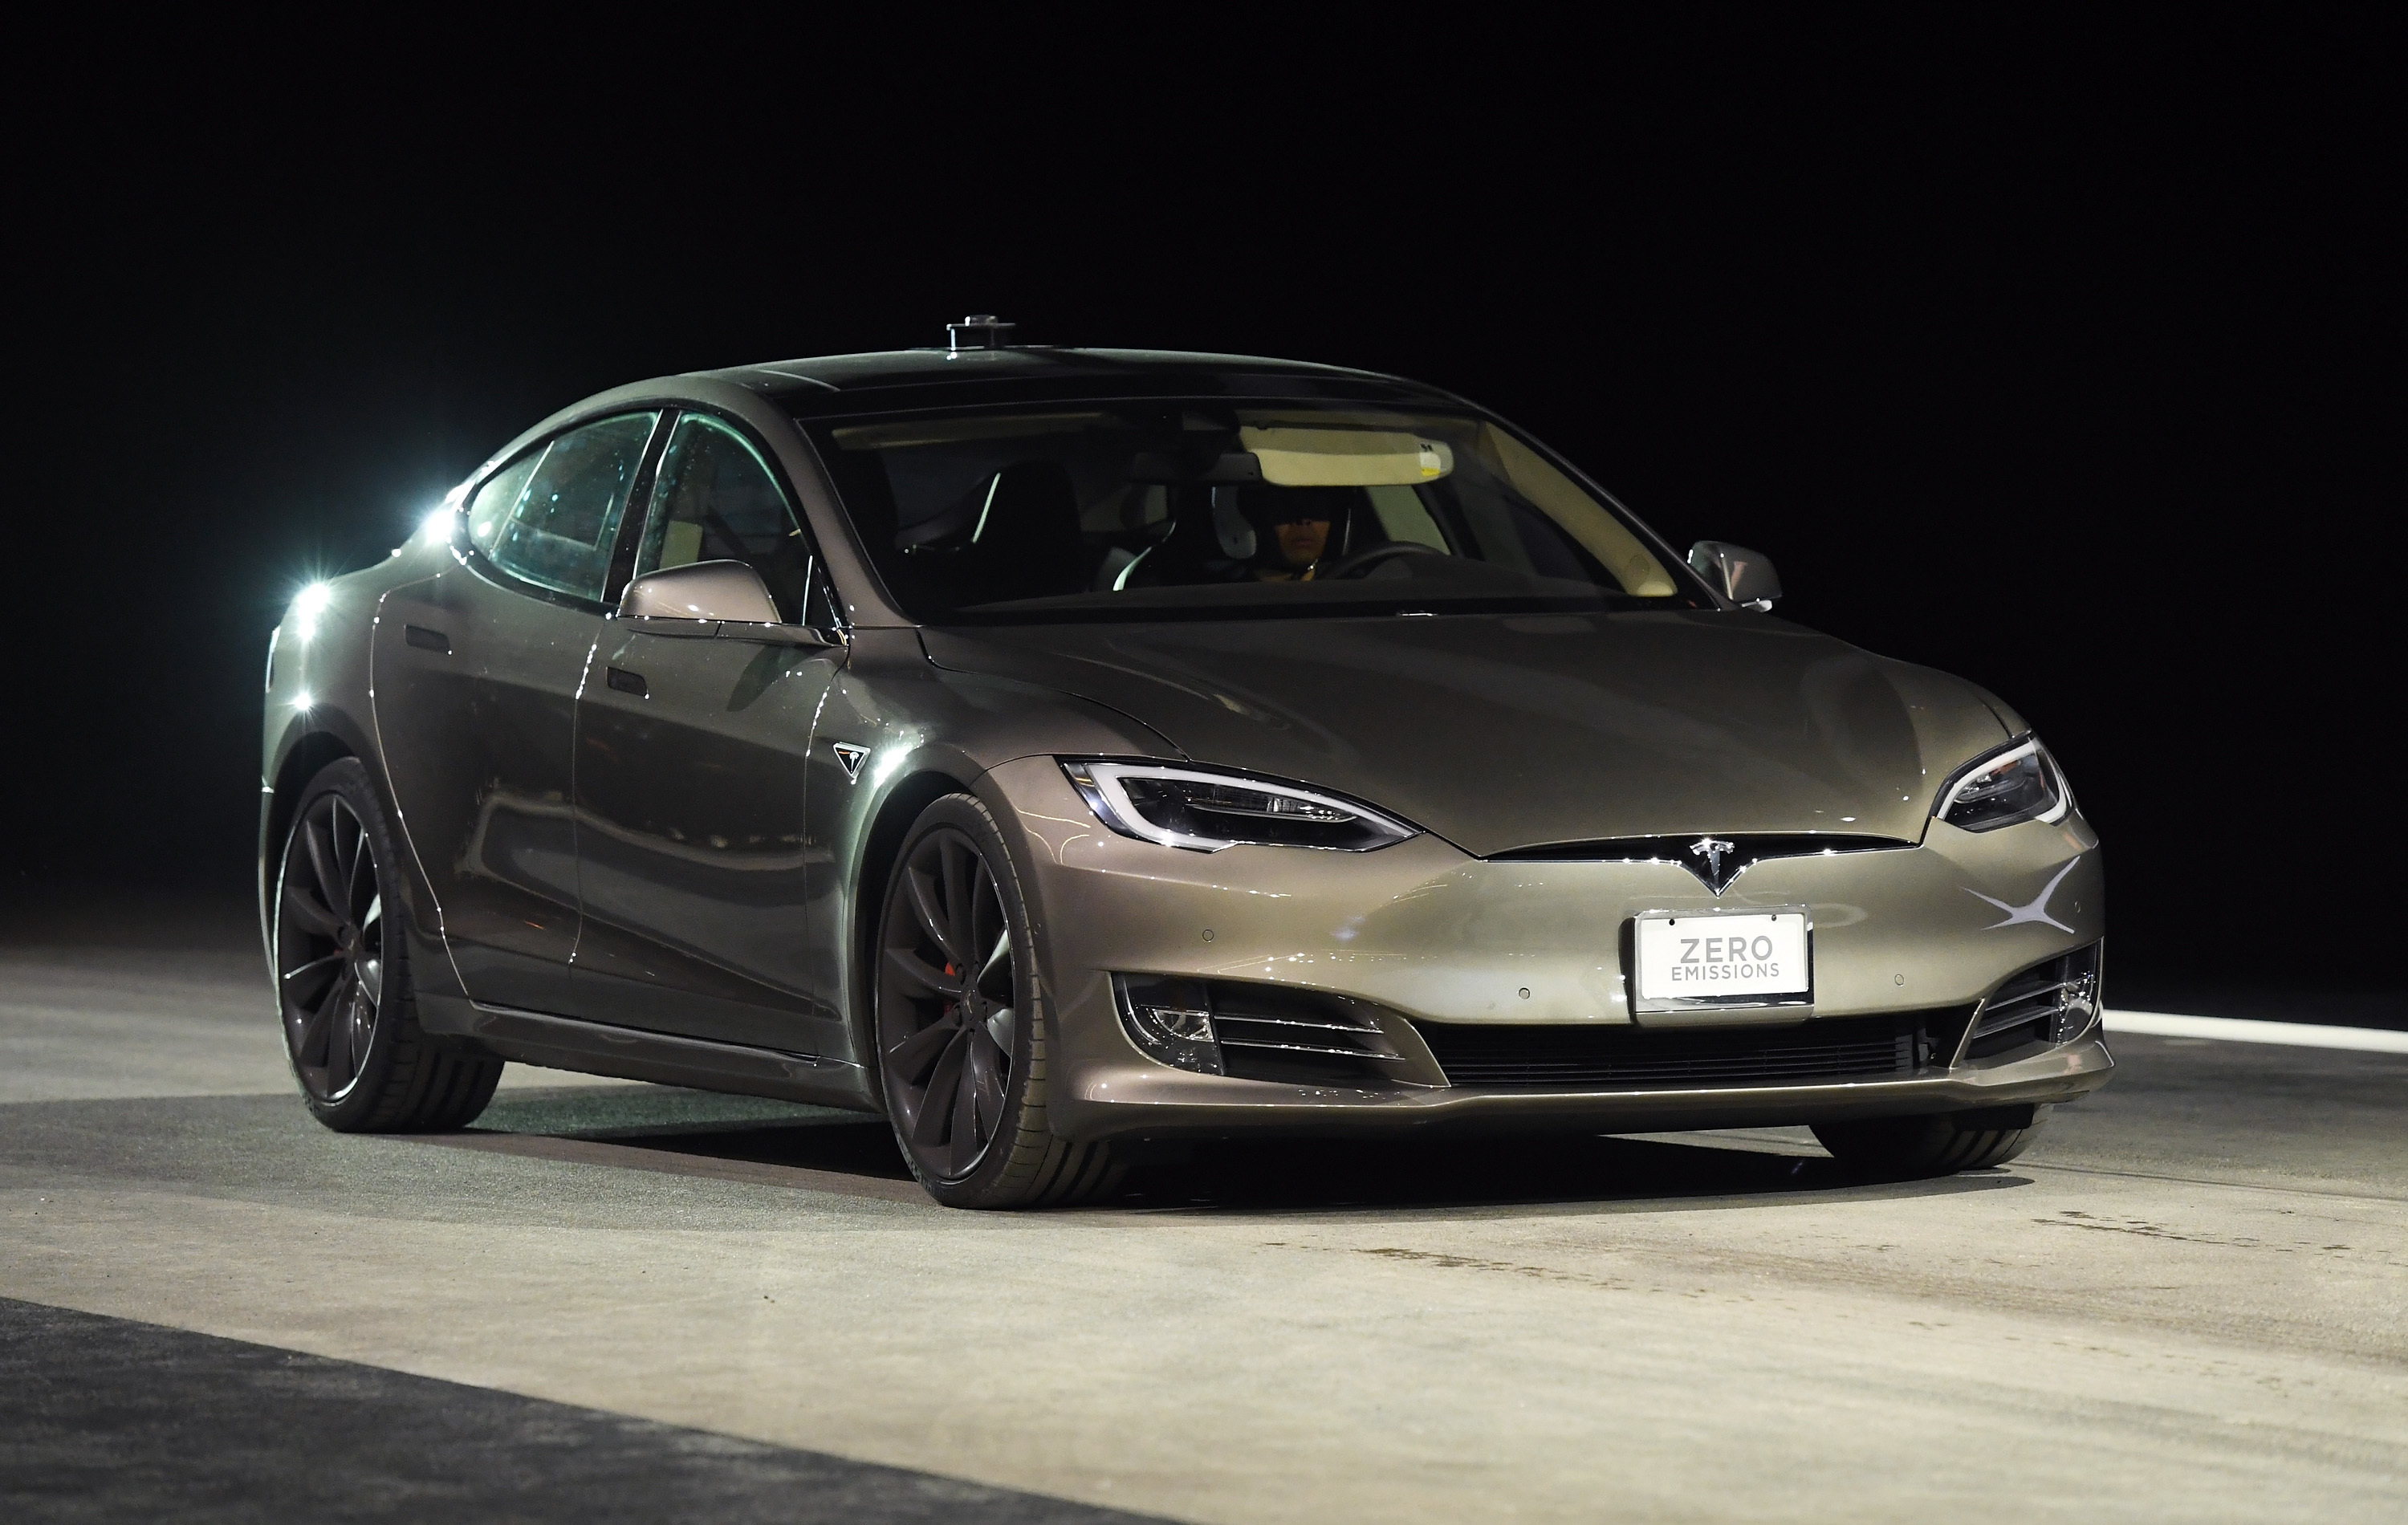 Cars like the Tesla Model S already use cellular connectivity, but self-driving cars will increase demand for on-the-go connections.